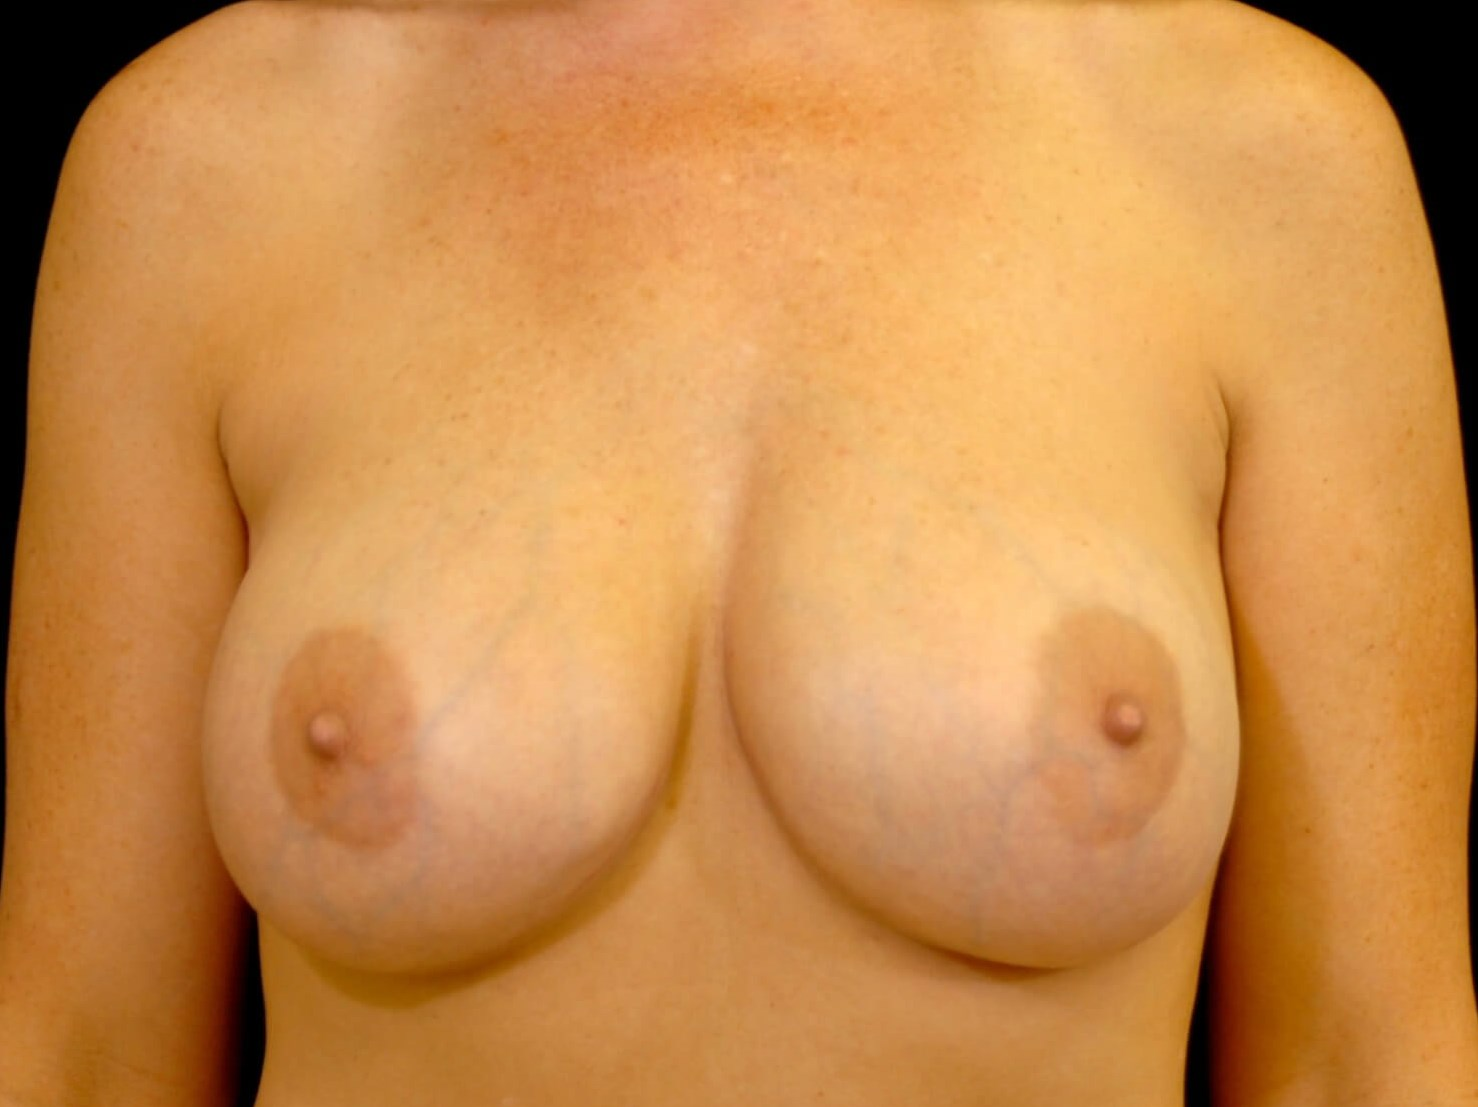 DALLAS, TEXAS WOMAN HAS BREAST IMPLANT REPLACEMENT AND BREAST LIFT SURGERY